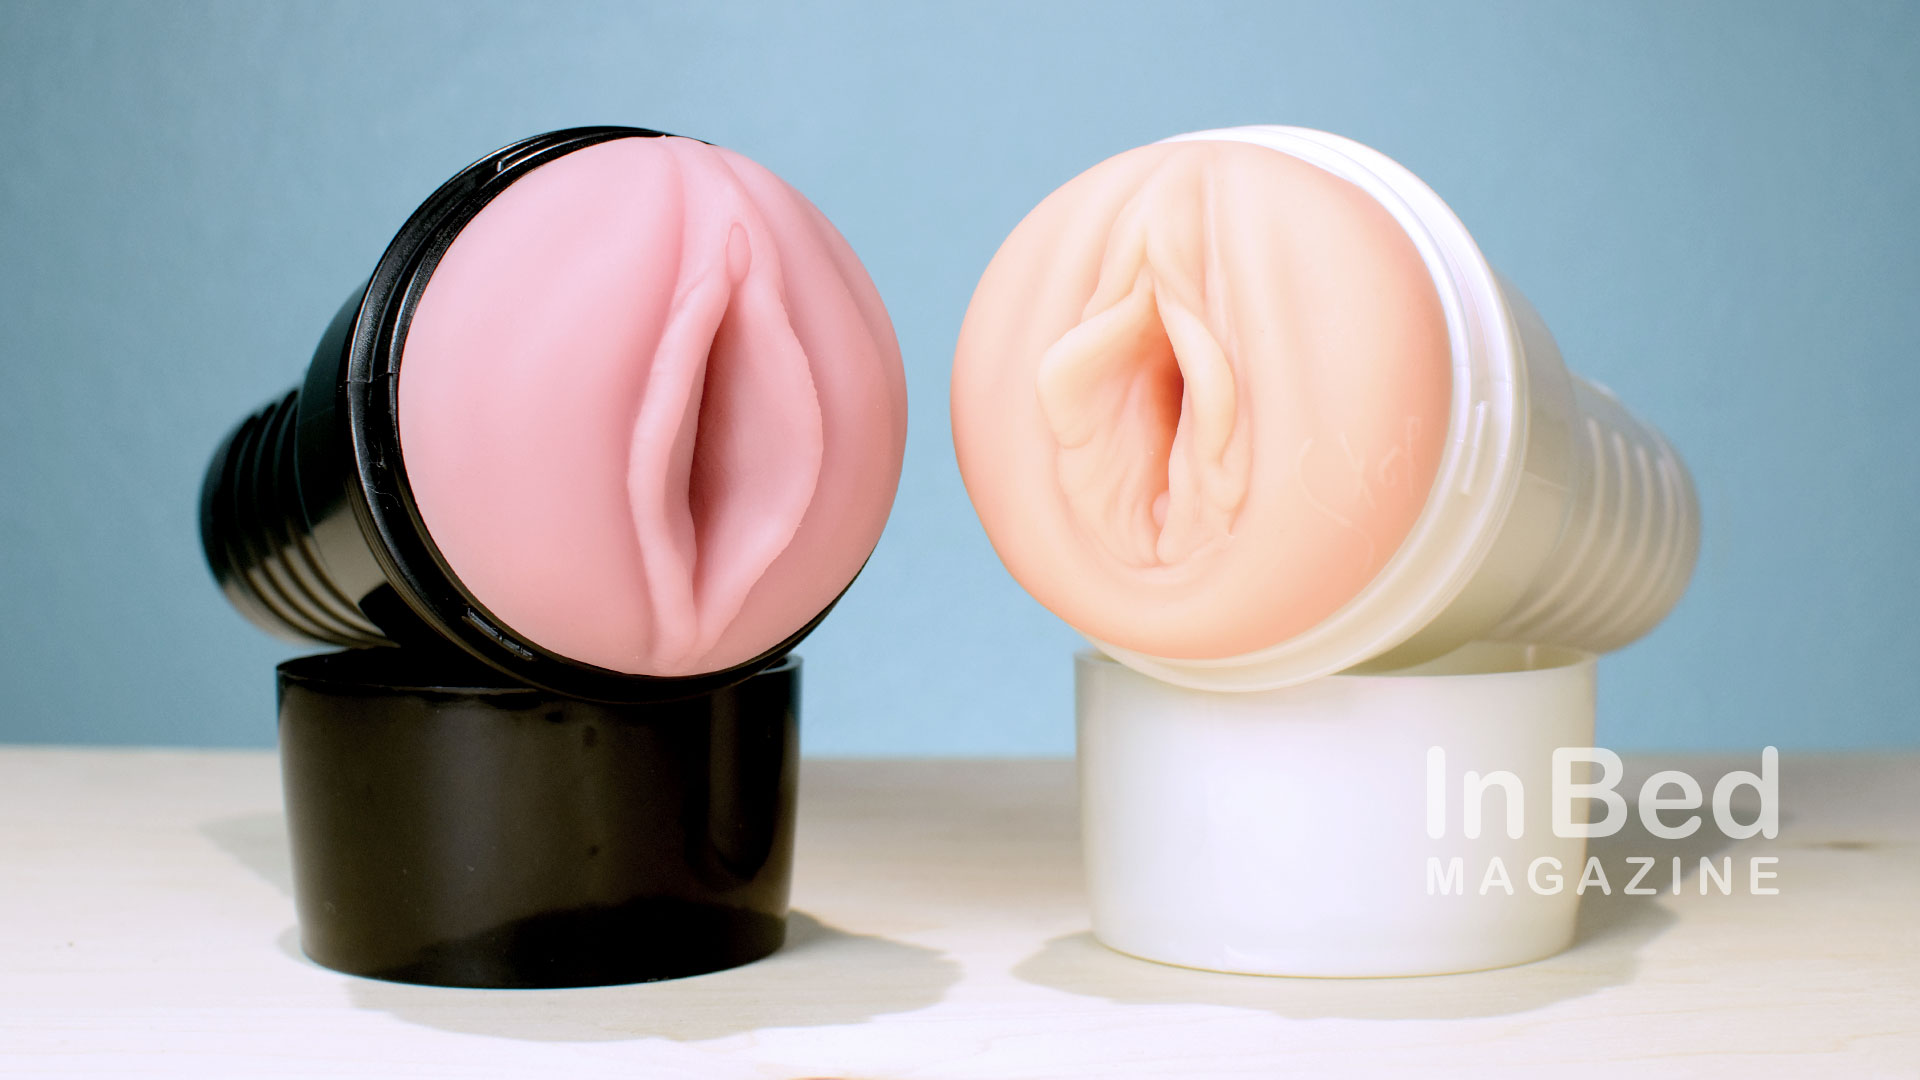 How To Make A Jomemade Fleshlight